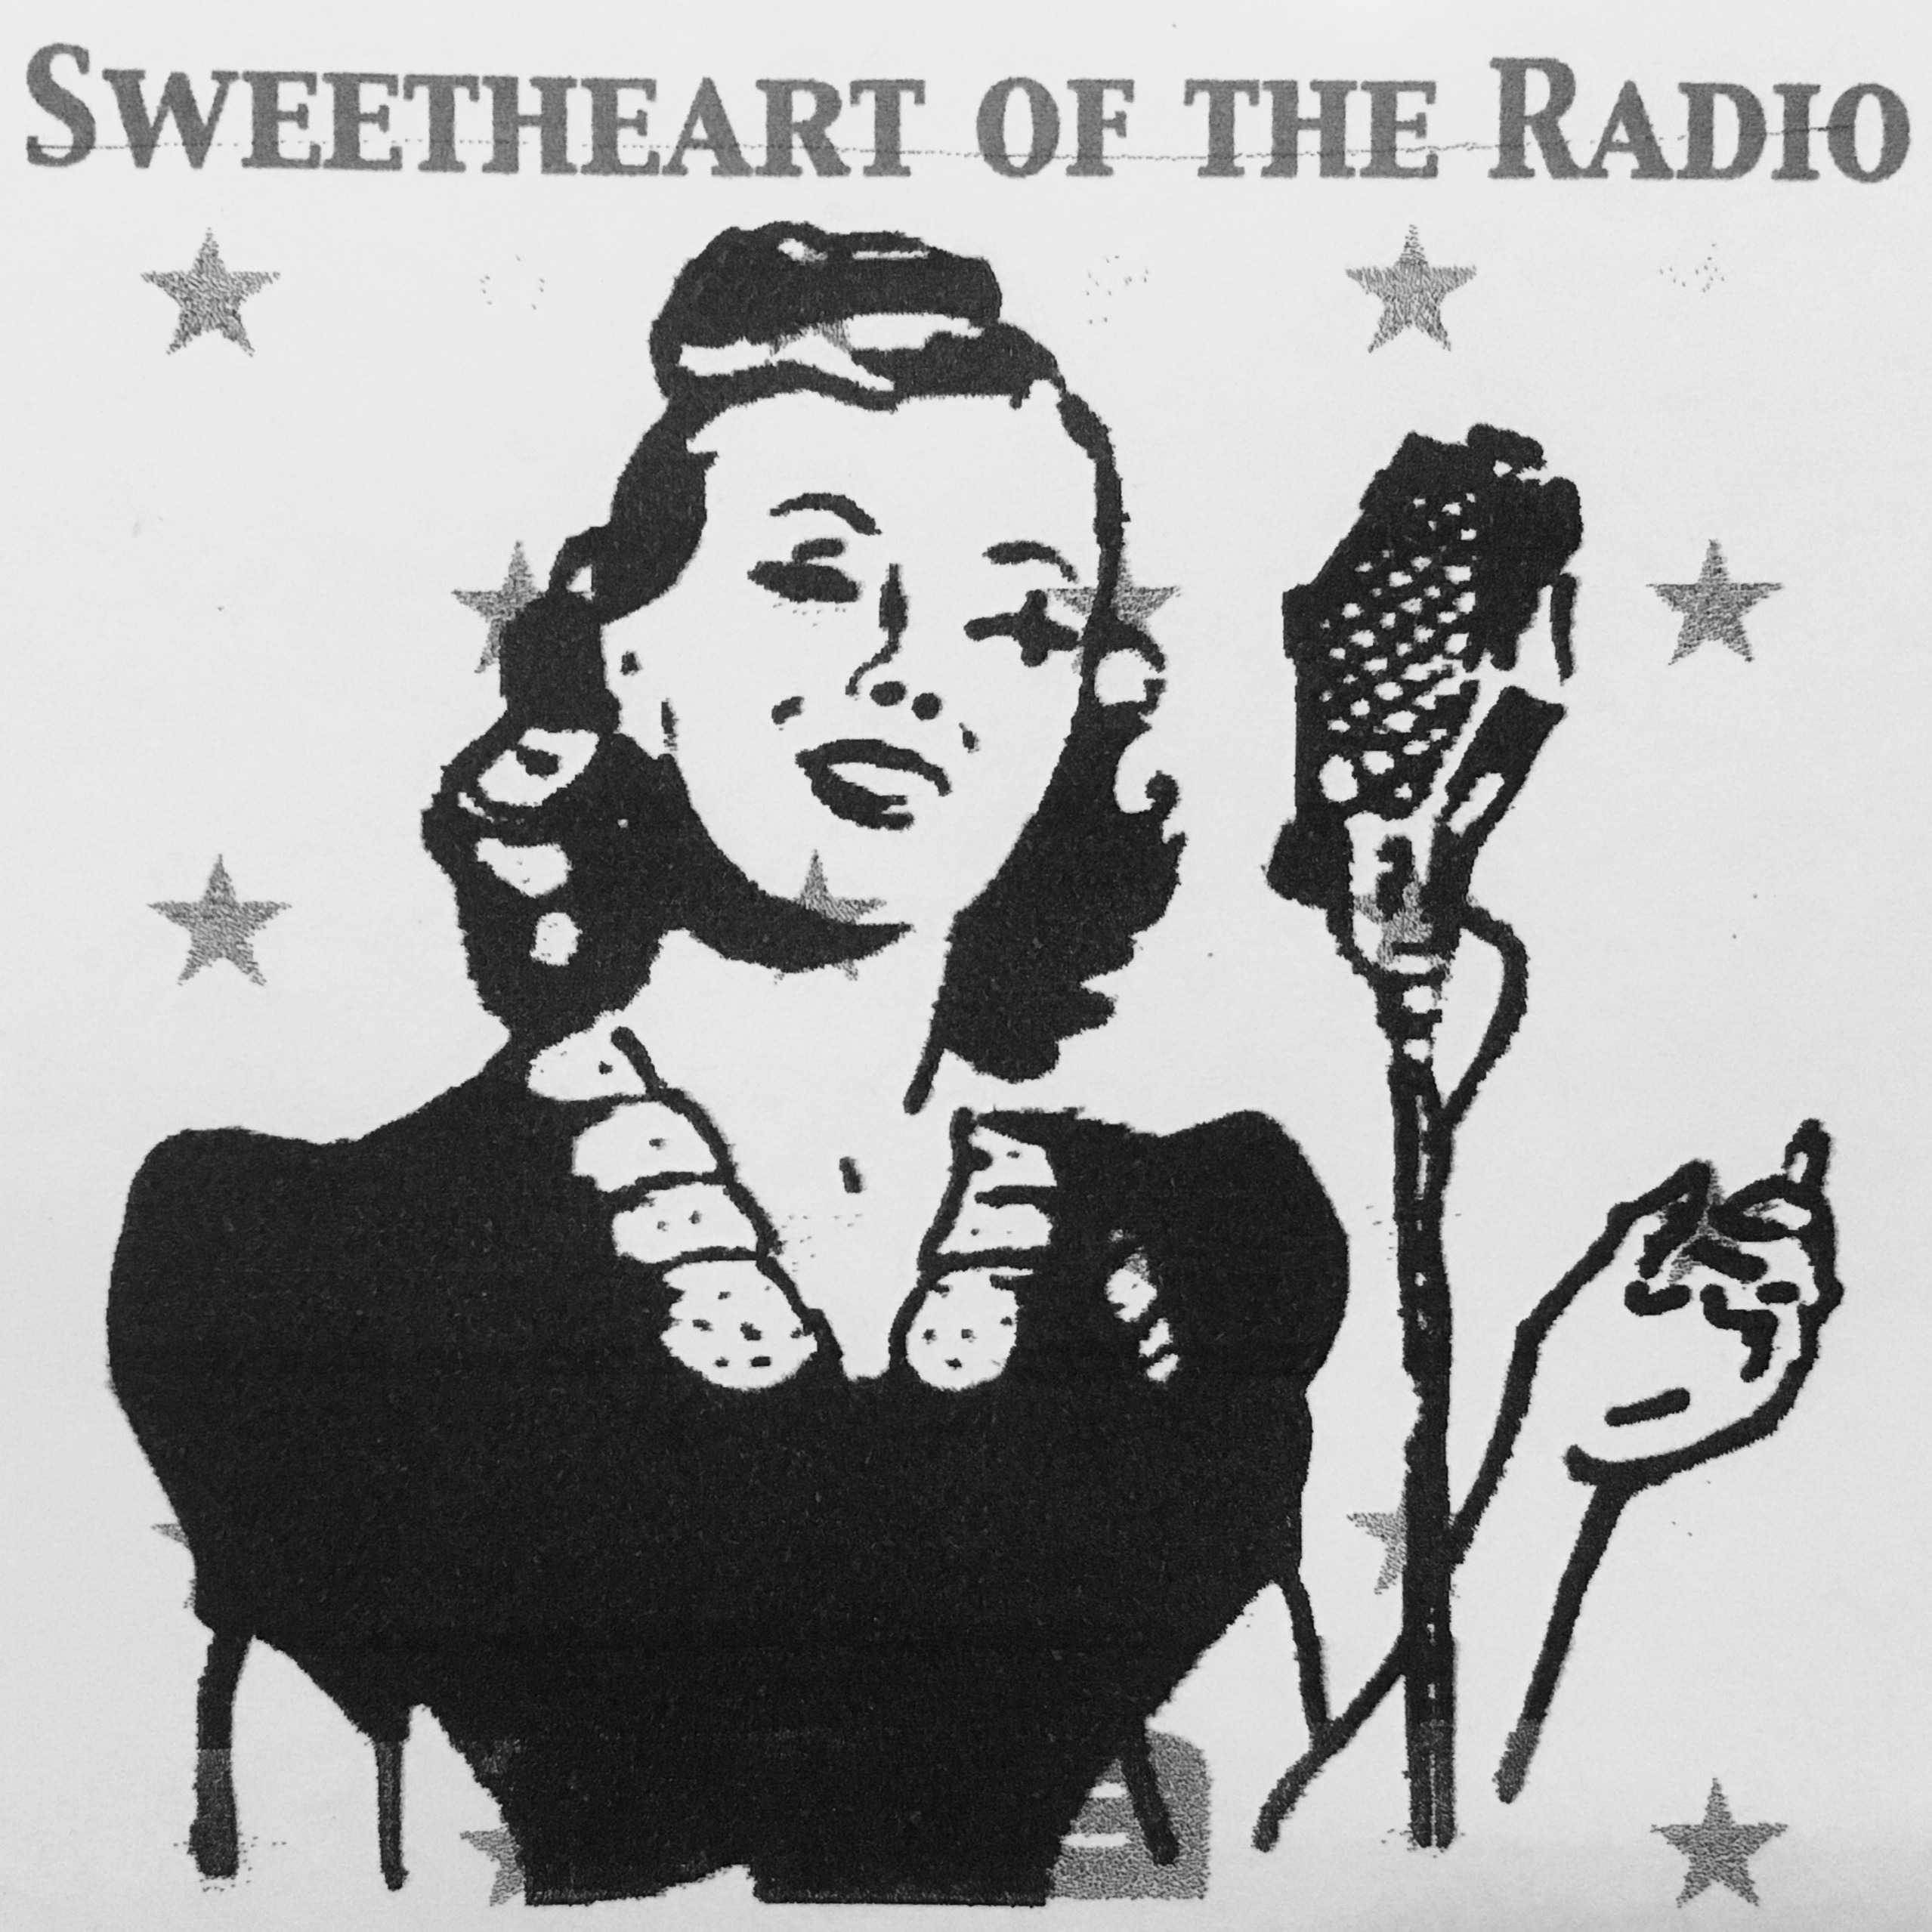 Sweetheart of the Radio